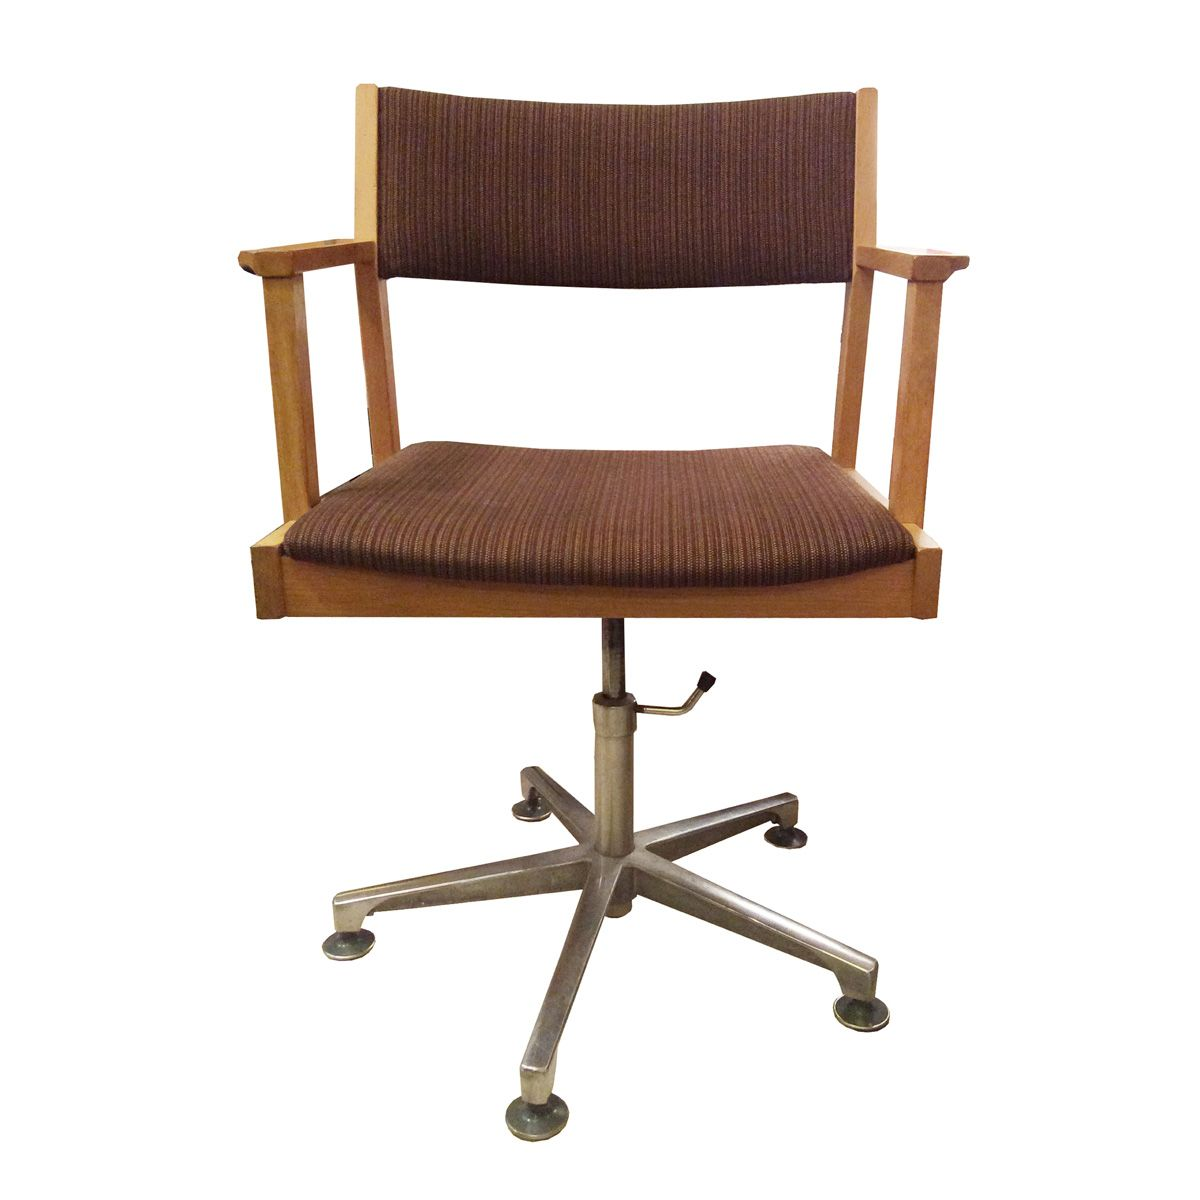 ergonomic chair norway black mesh office vintage from 1970s for sale at pamono